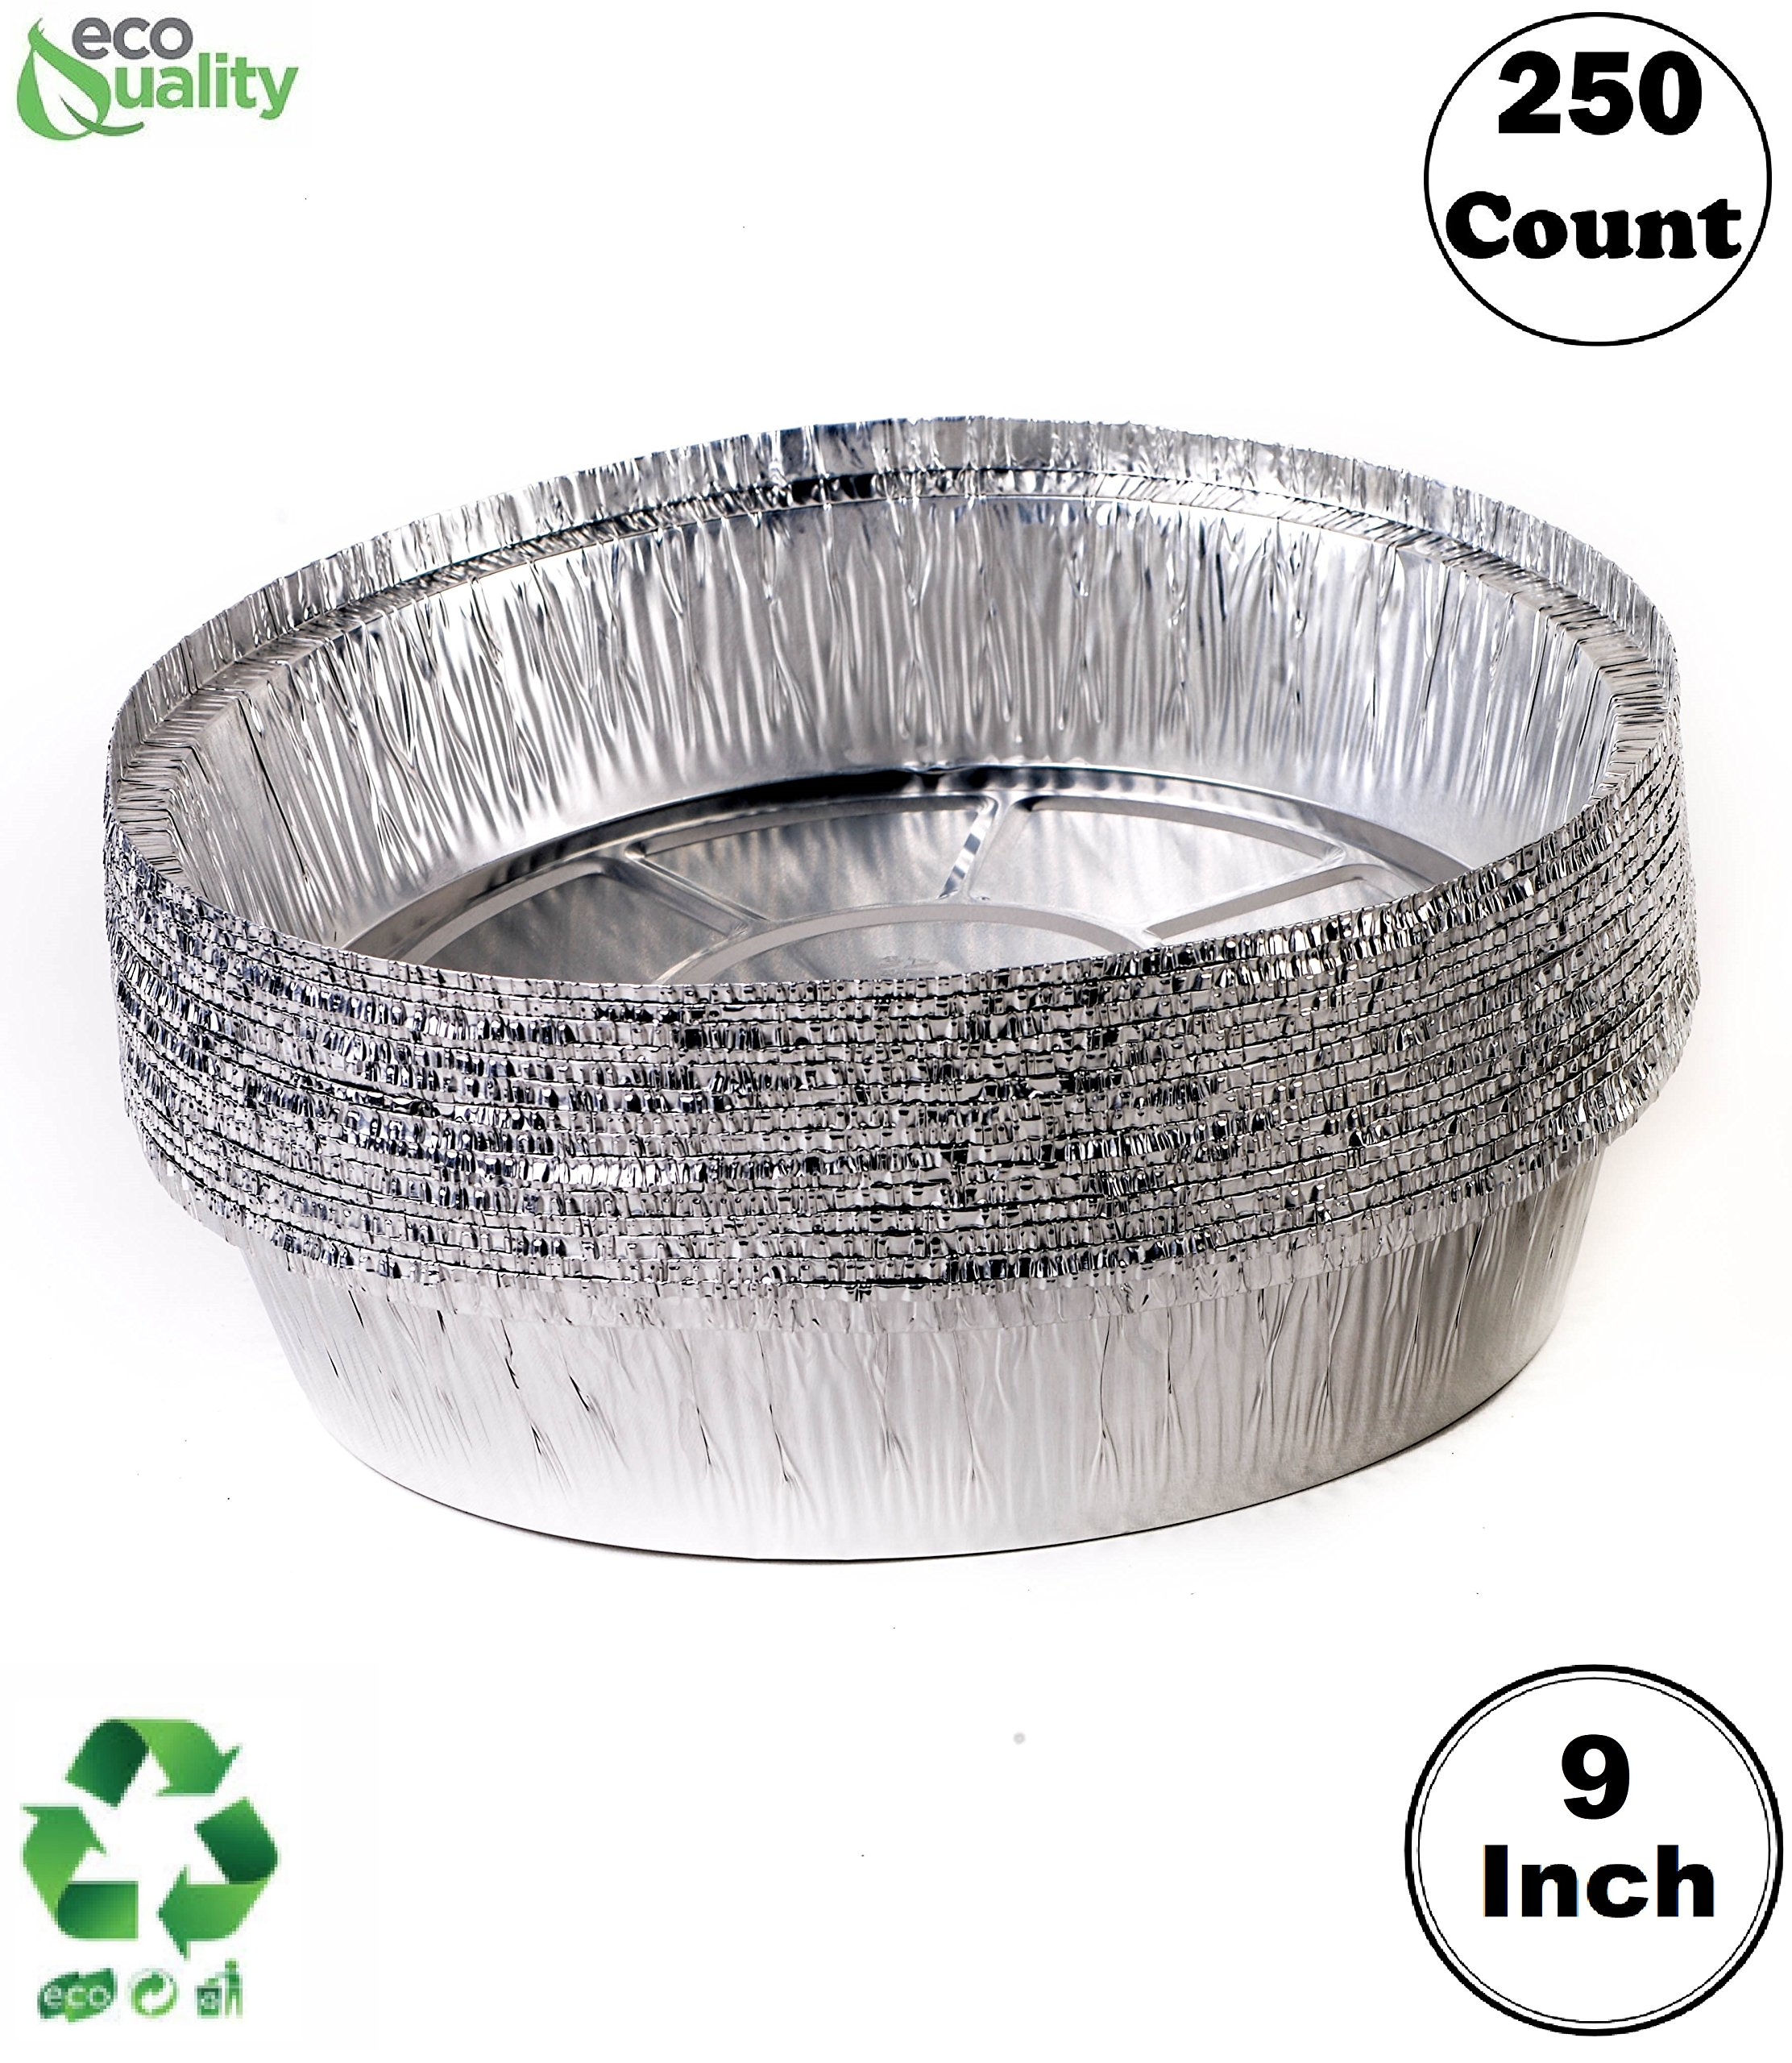 EcoQuality (250 Pack) - 9 Inch Disposable Round Aluminum Foil Take-Out Pans - Disposable Tin Containers, Perfect for Baking, Cooking, Catering, Parties, Restaurants (No Lids)